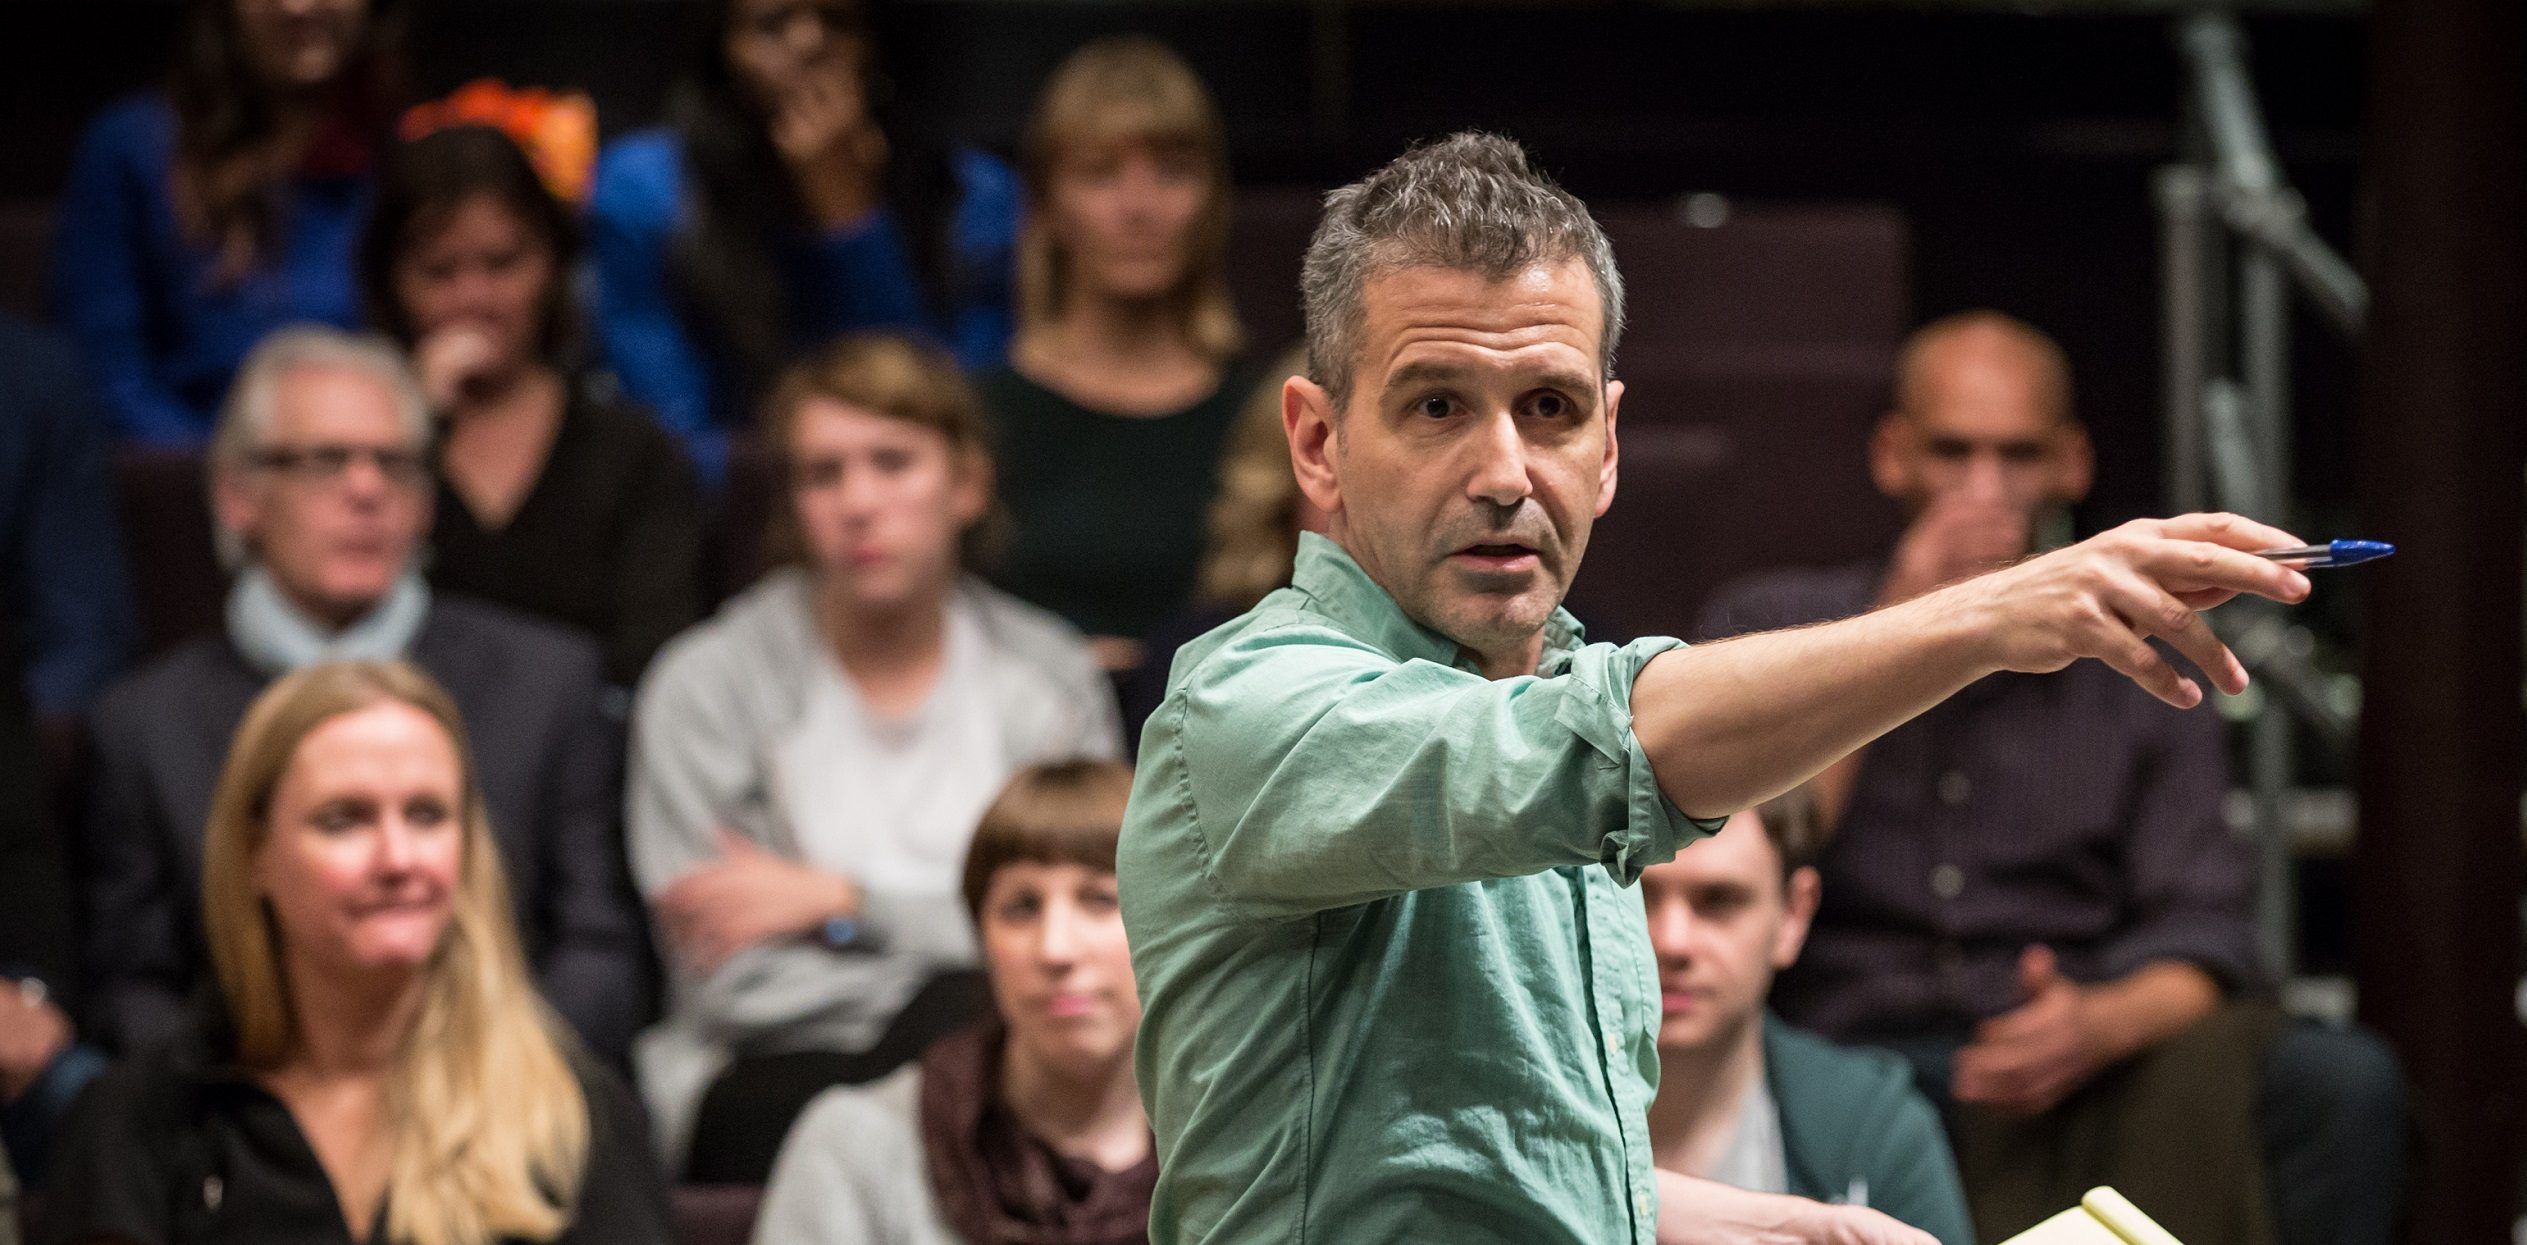 David Cromer Returns for One-Night OUR TOWN Benefit for The Hypocrites